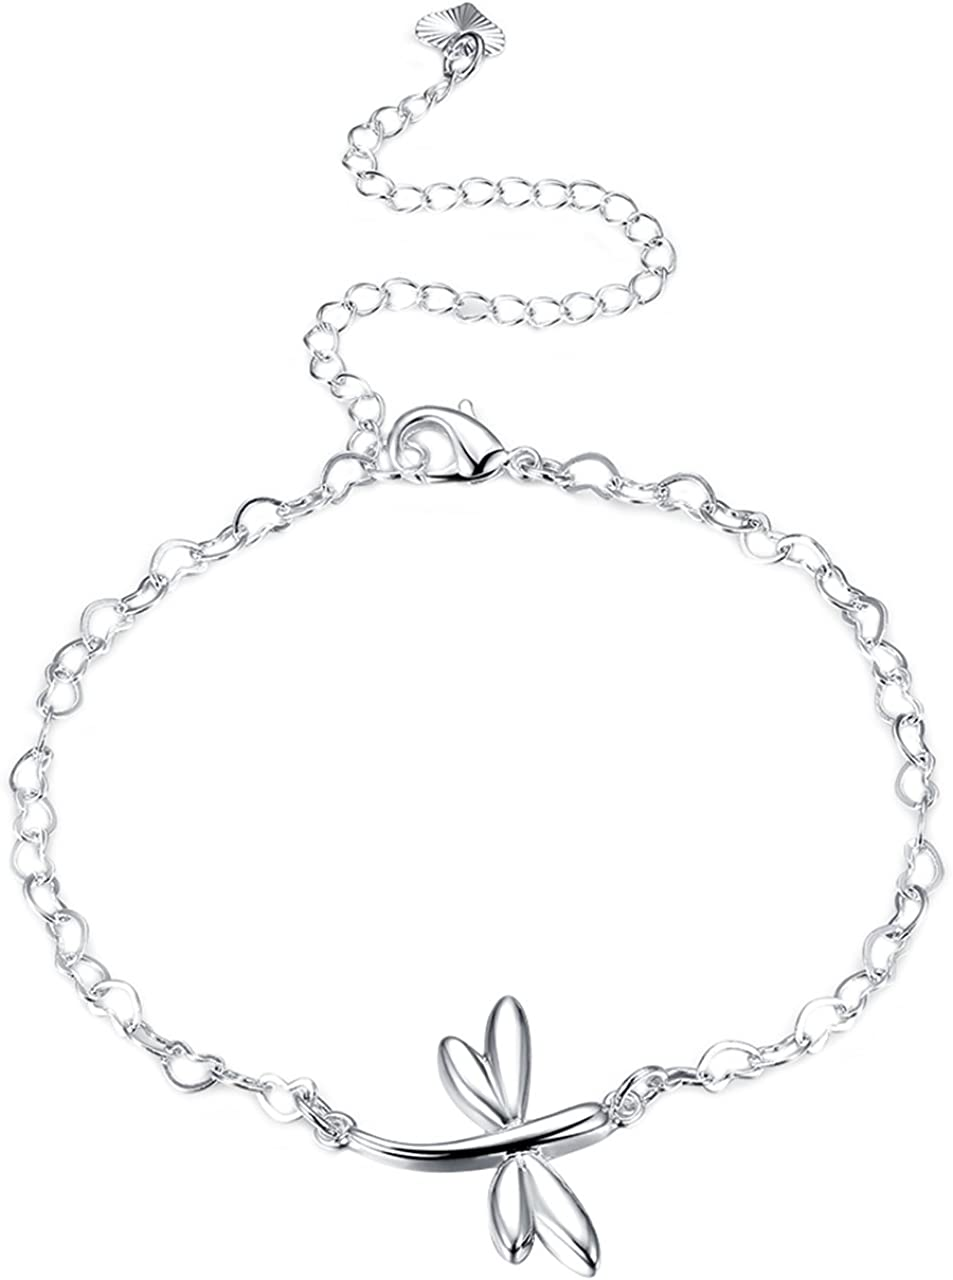 SIMPLE ANKLET ANKLE BRACELET CHAIN SILVER PLATED GOLD PLATED UK SELLER